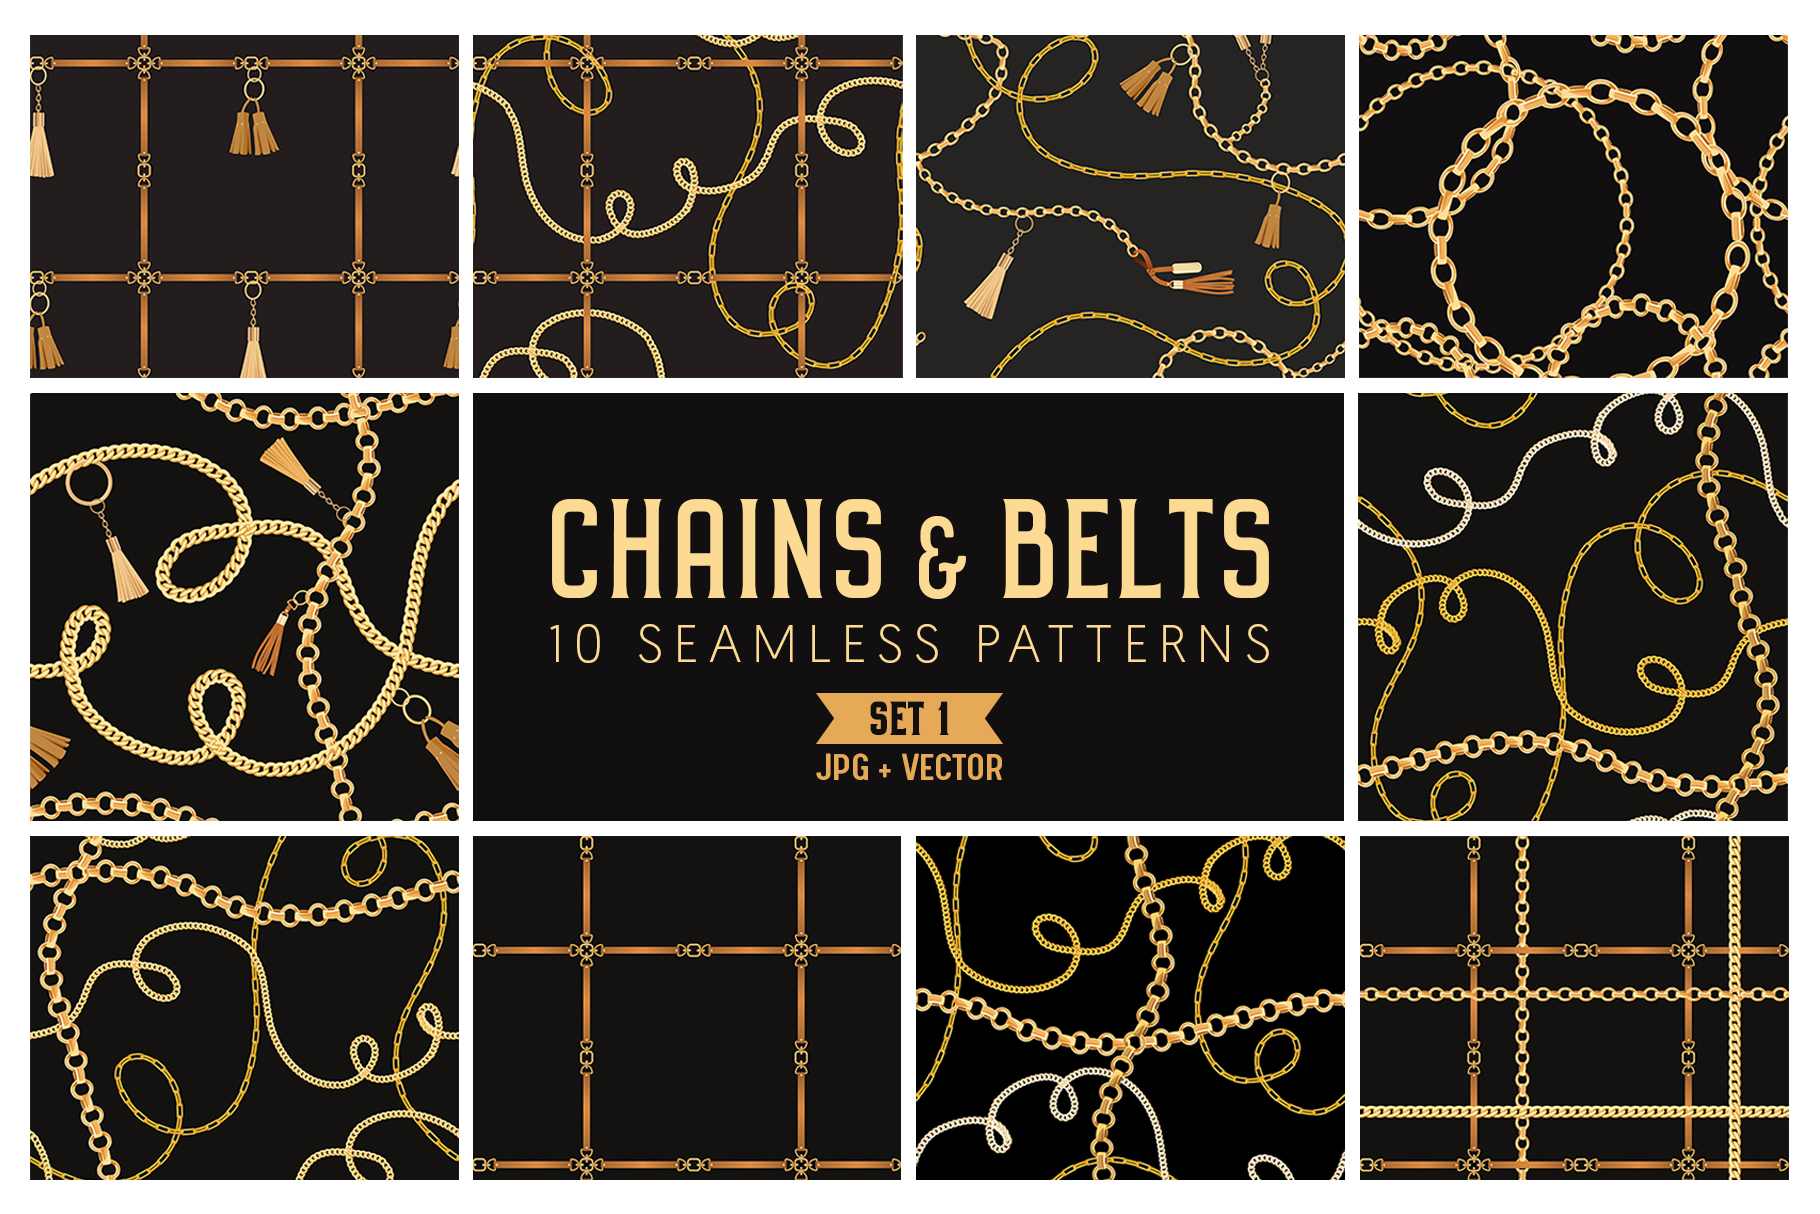 Chains and Belts Seamless Patterns. Set 1 example image 1